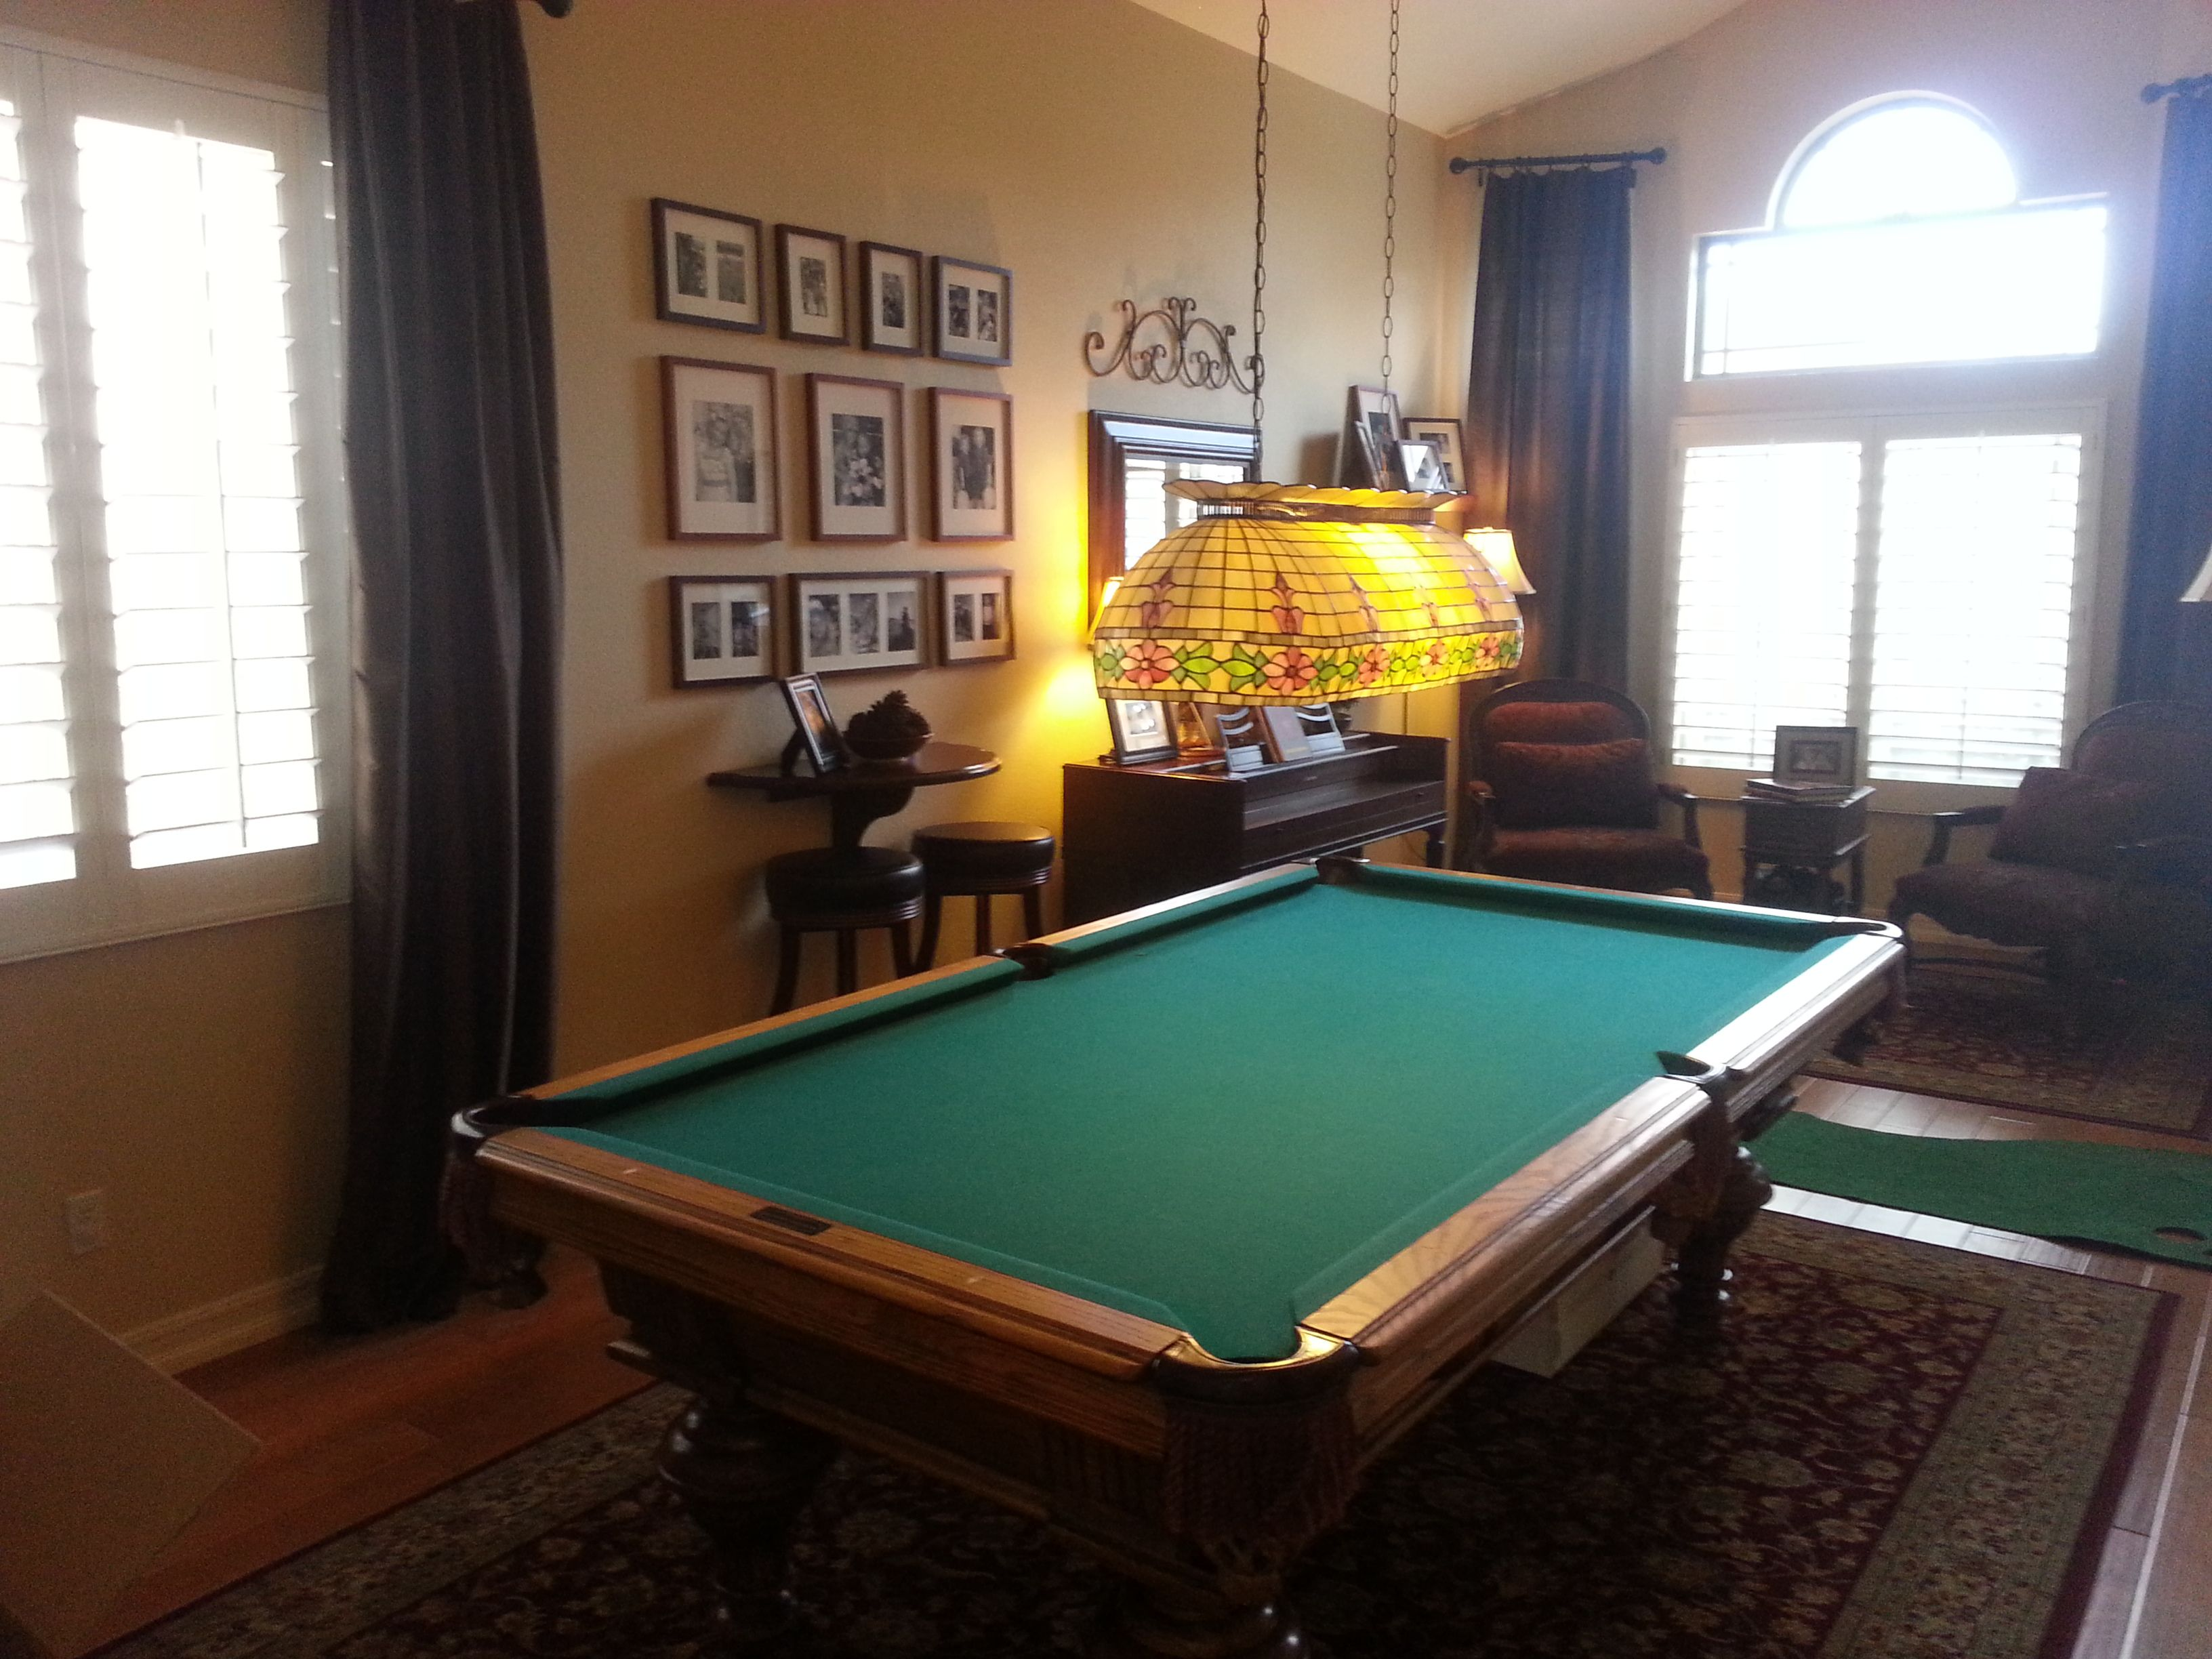 Formal Living Dining Rooms Are Often Better Used For Pool Tables Pool Table Room Pool Table Room Size Small Pool Table